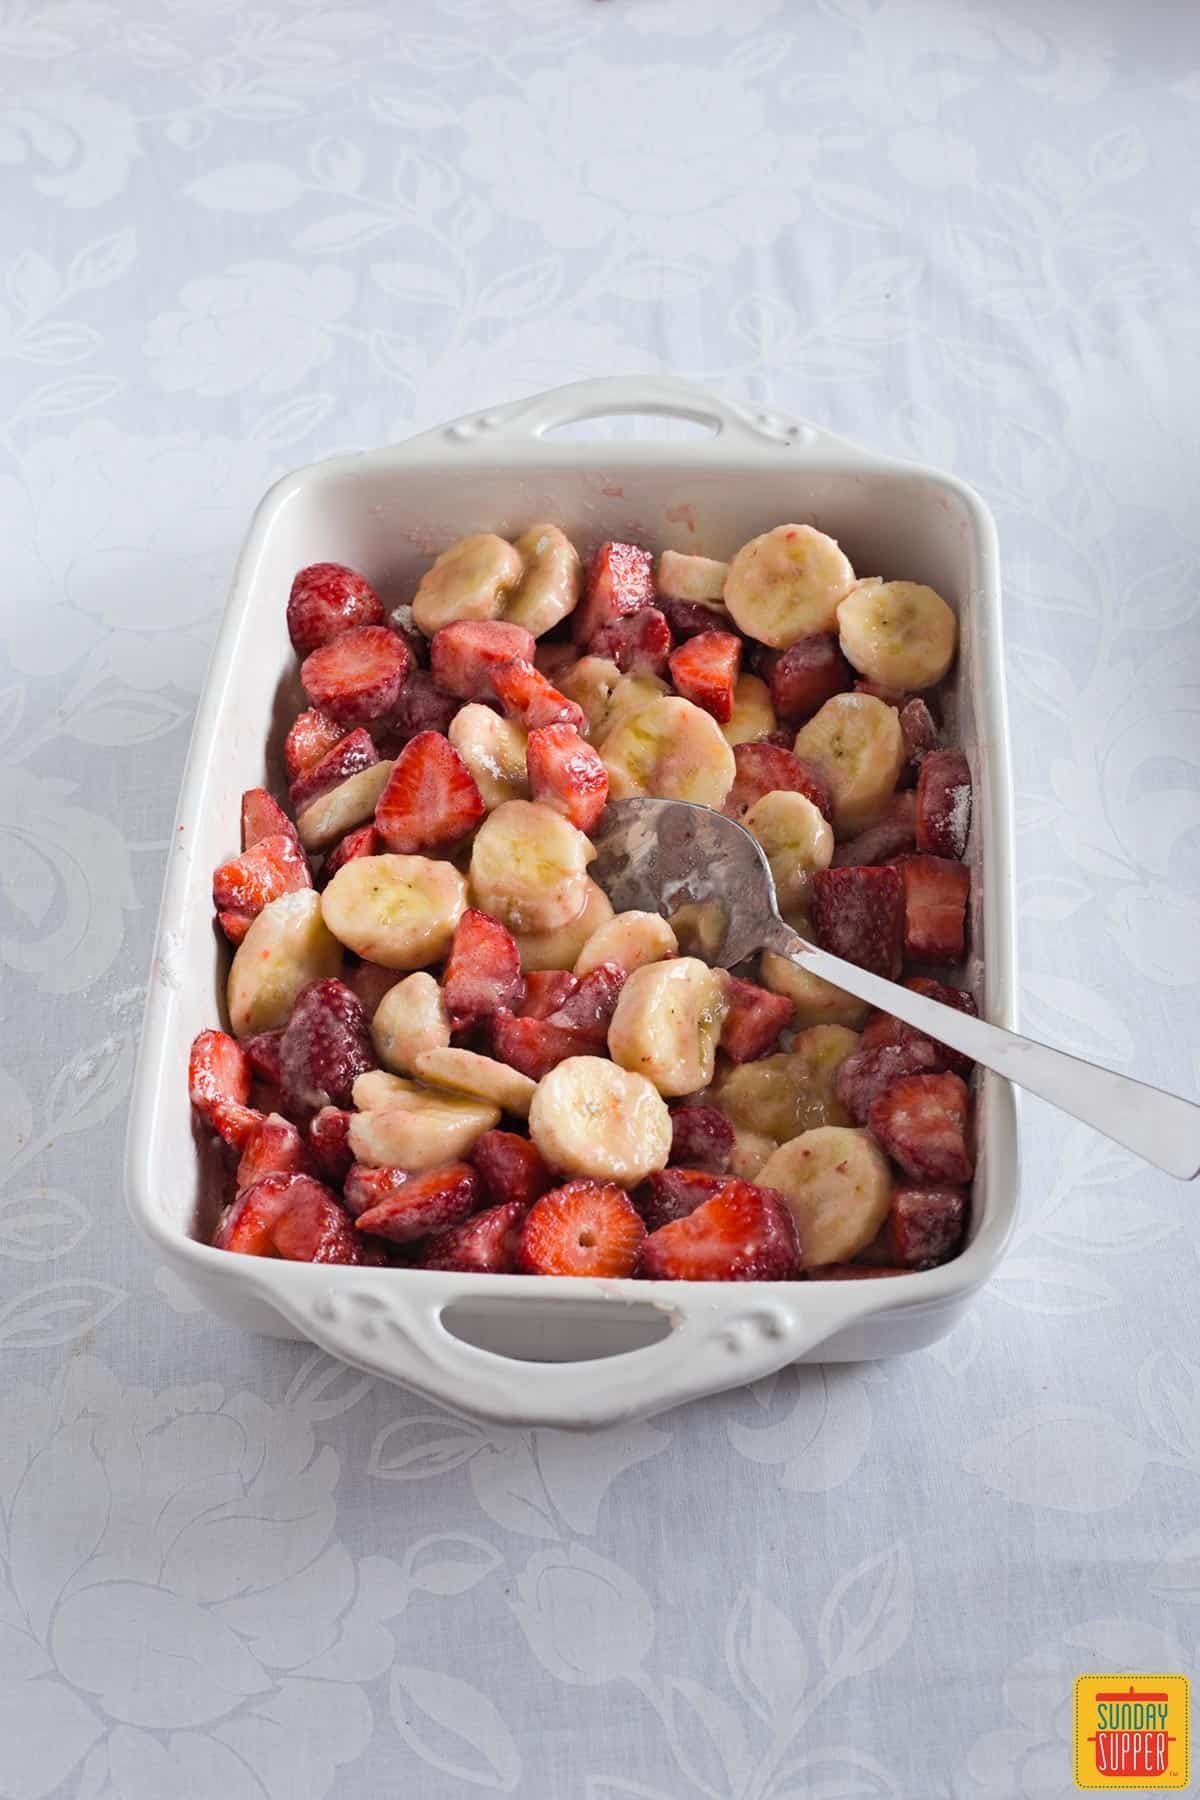 Strawberries and bananas in a white rectangular baking dish mixed with cornstarch and sugar